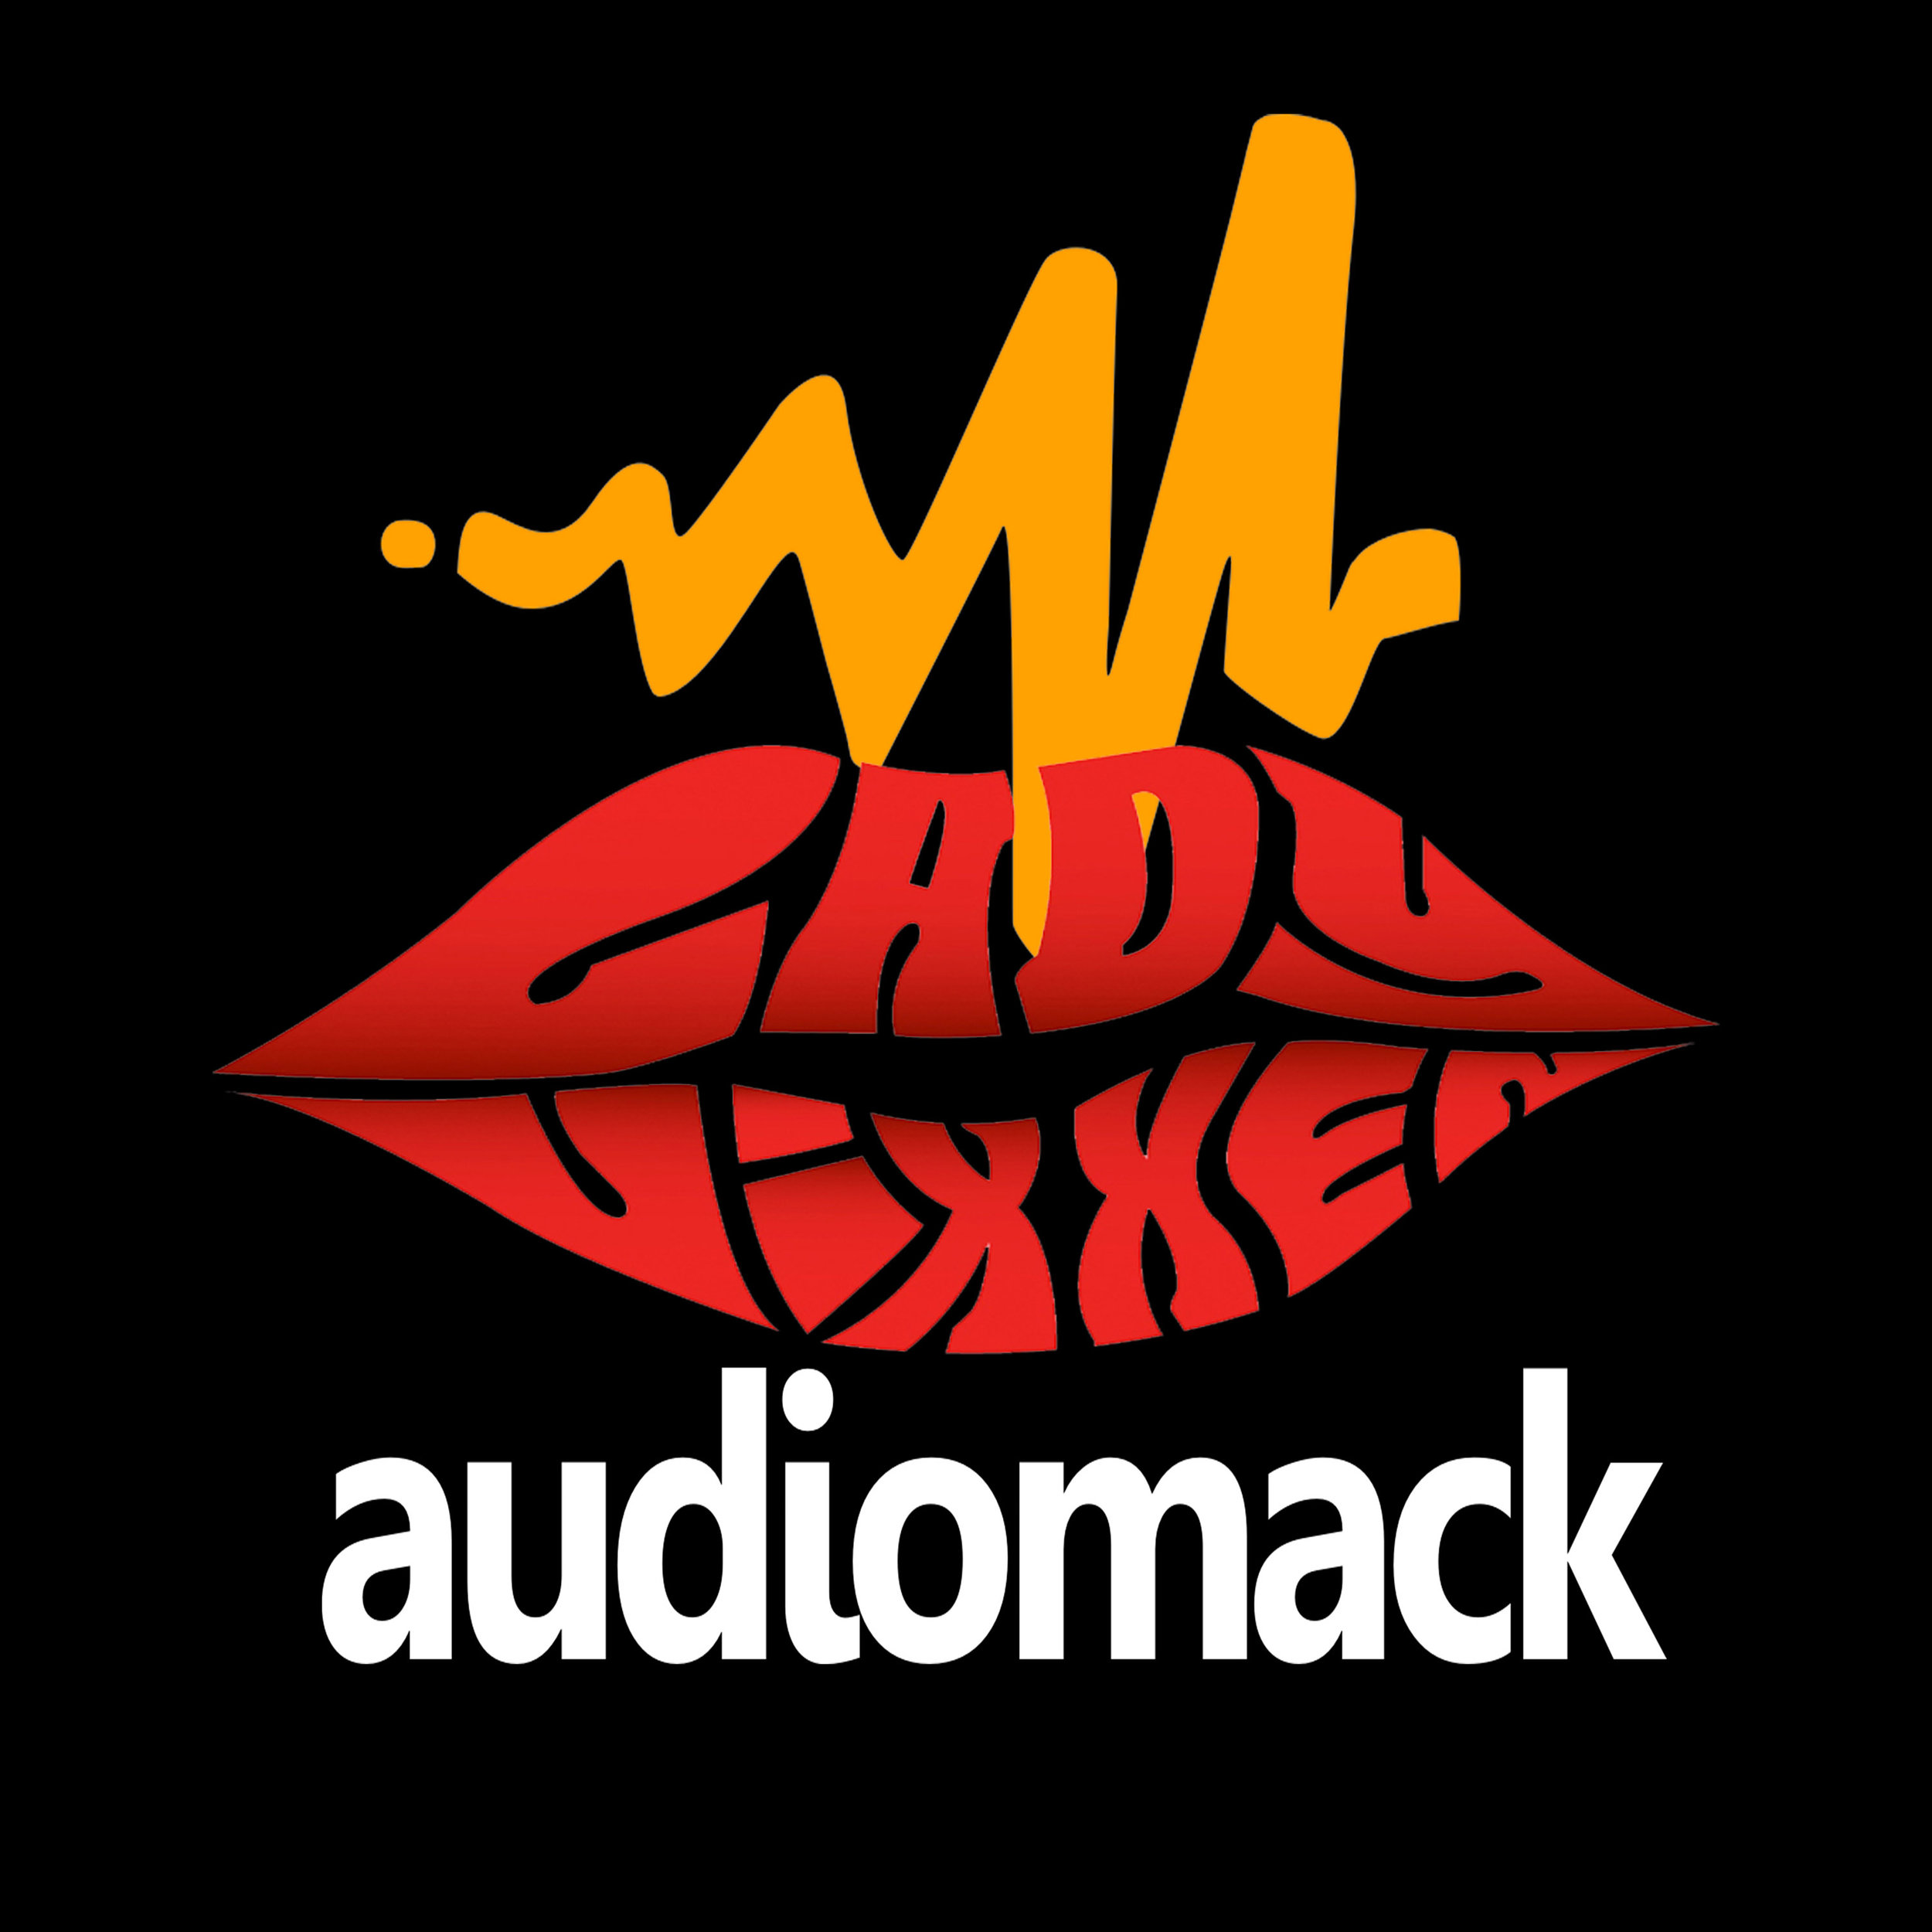 audiomack icon.jpg